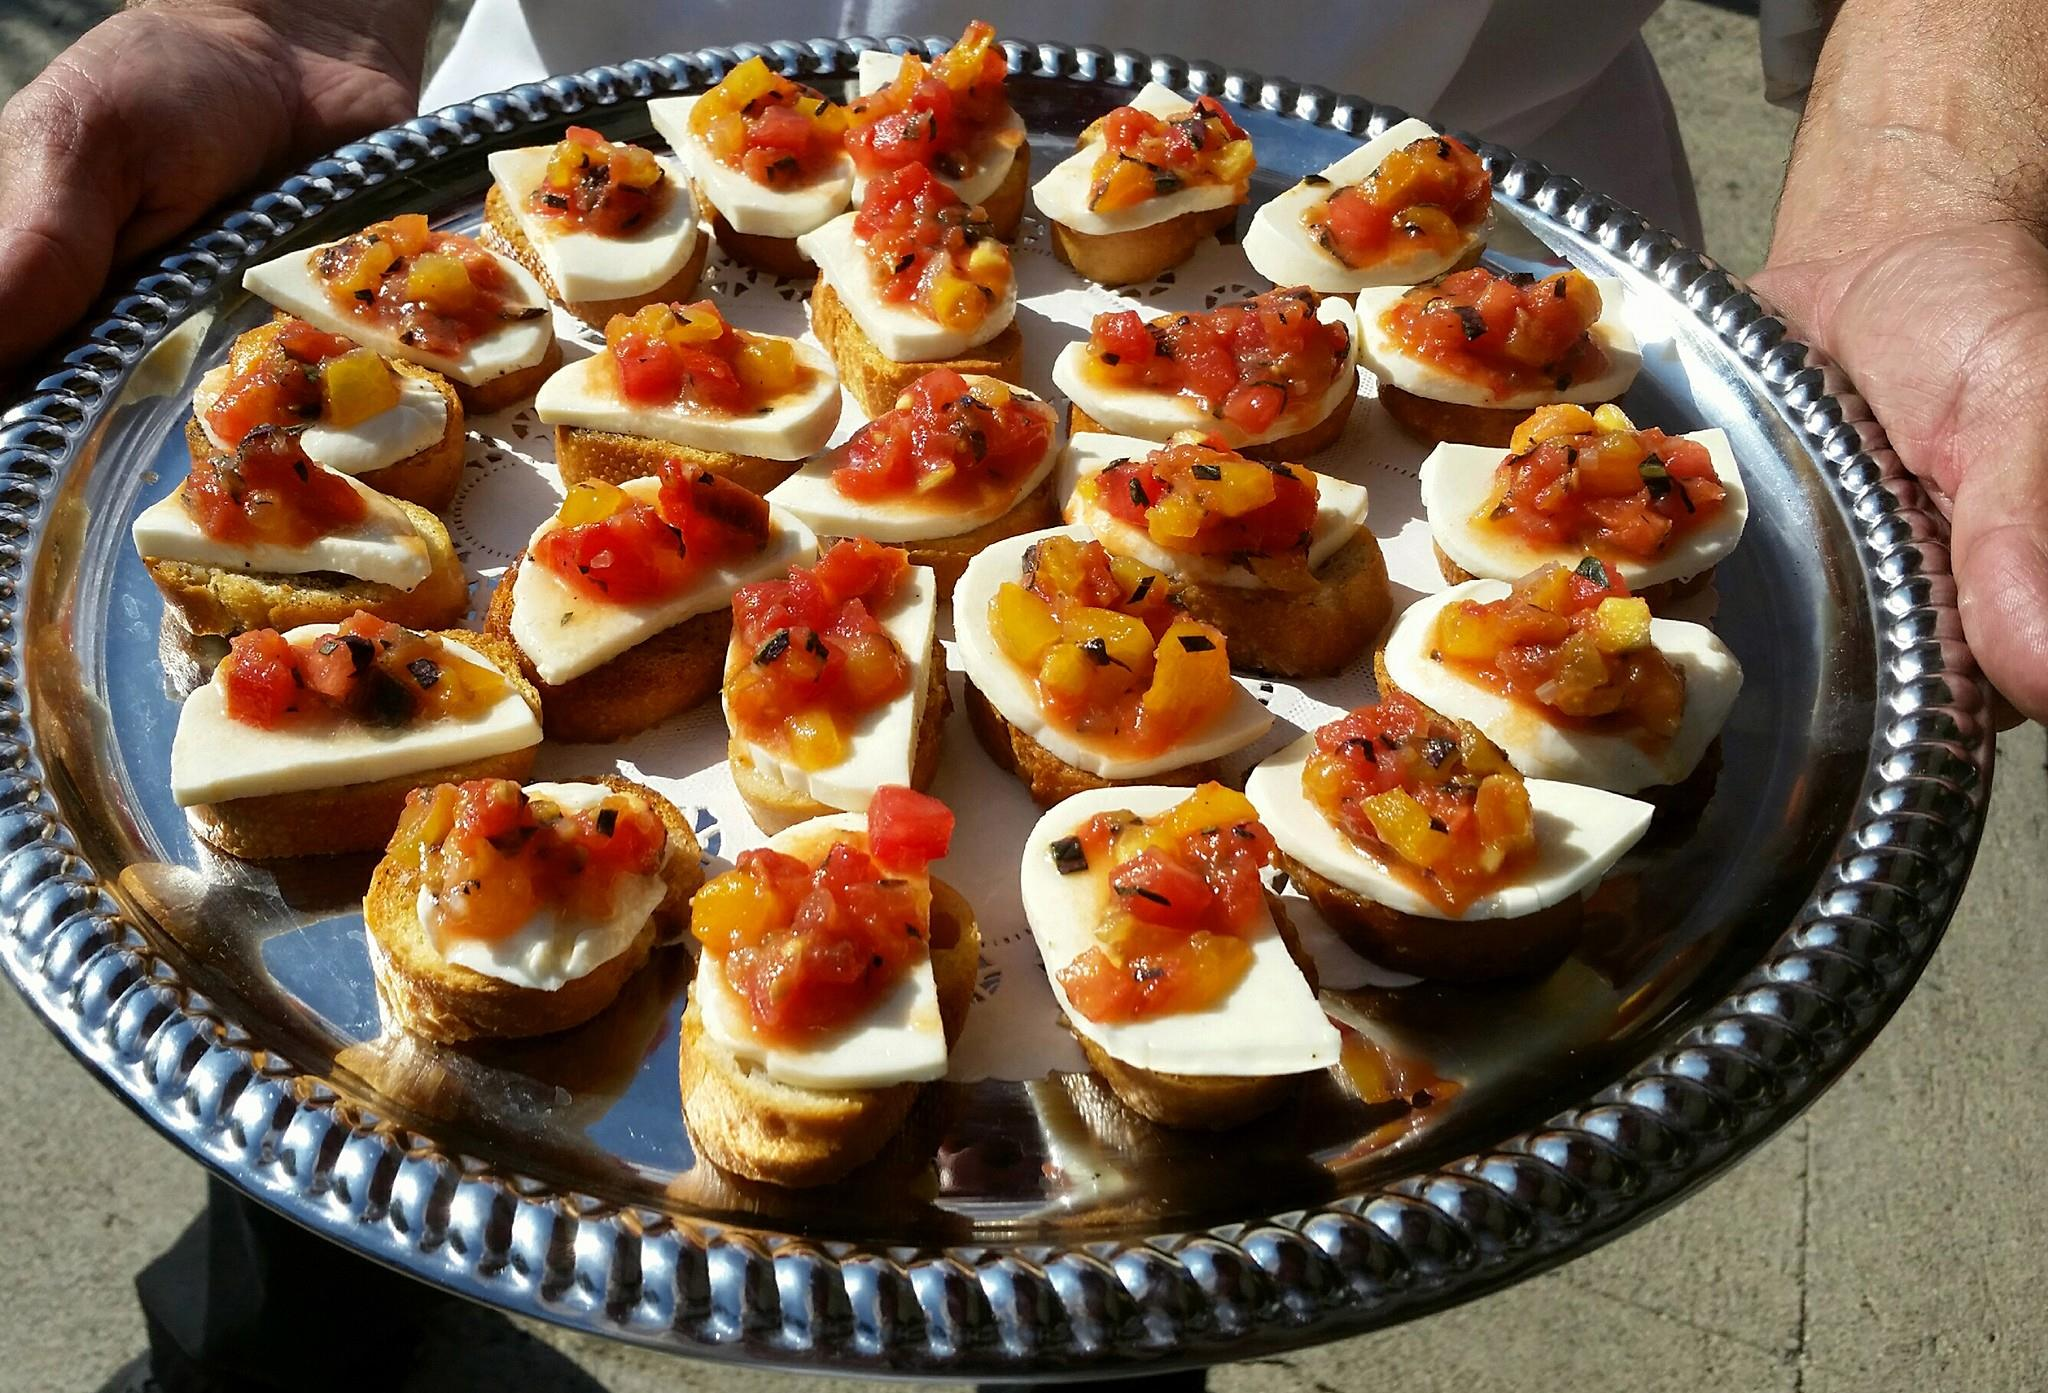 Bruschetta tray